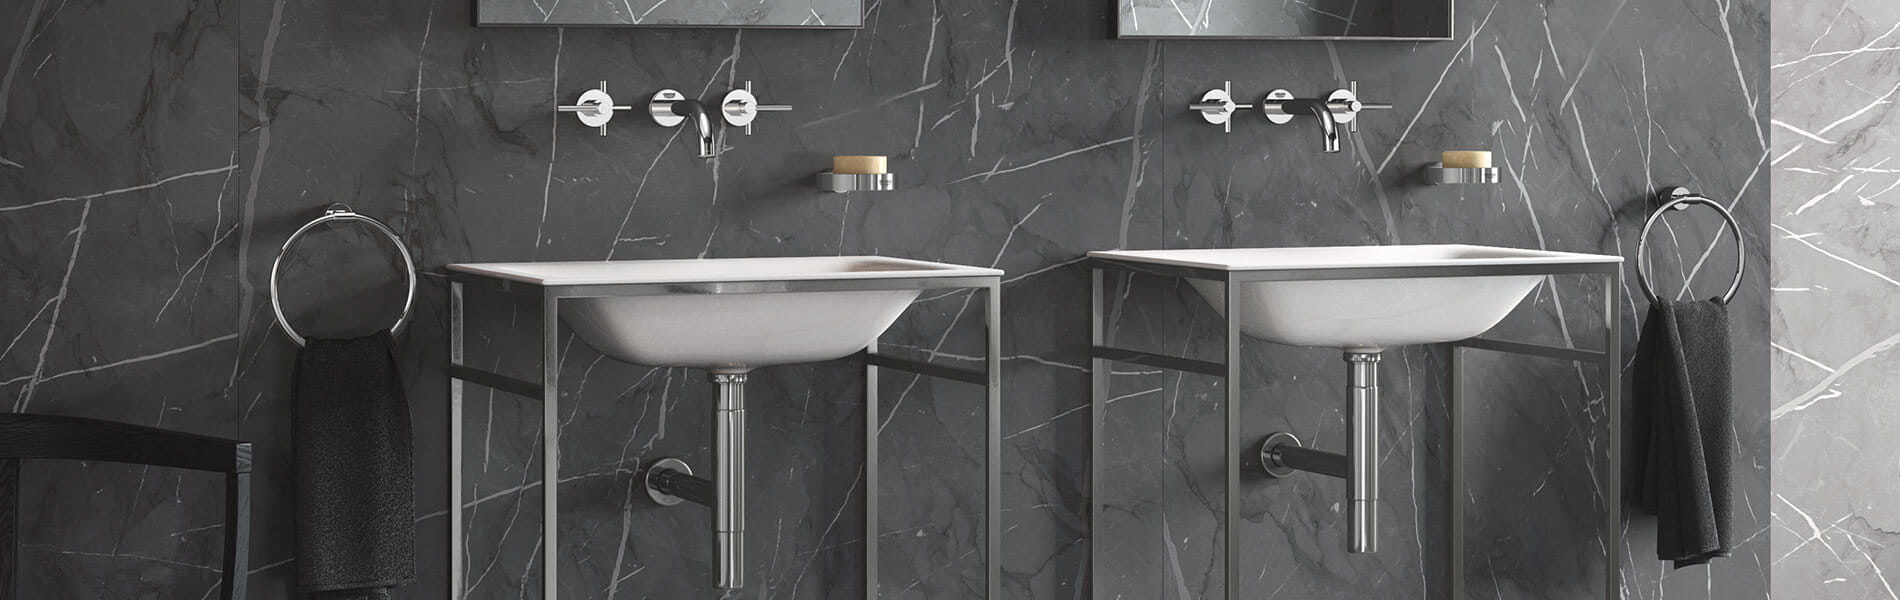 GROHE Modern Bathroom with Wall Mount Faucets